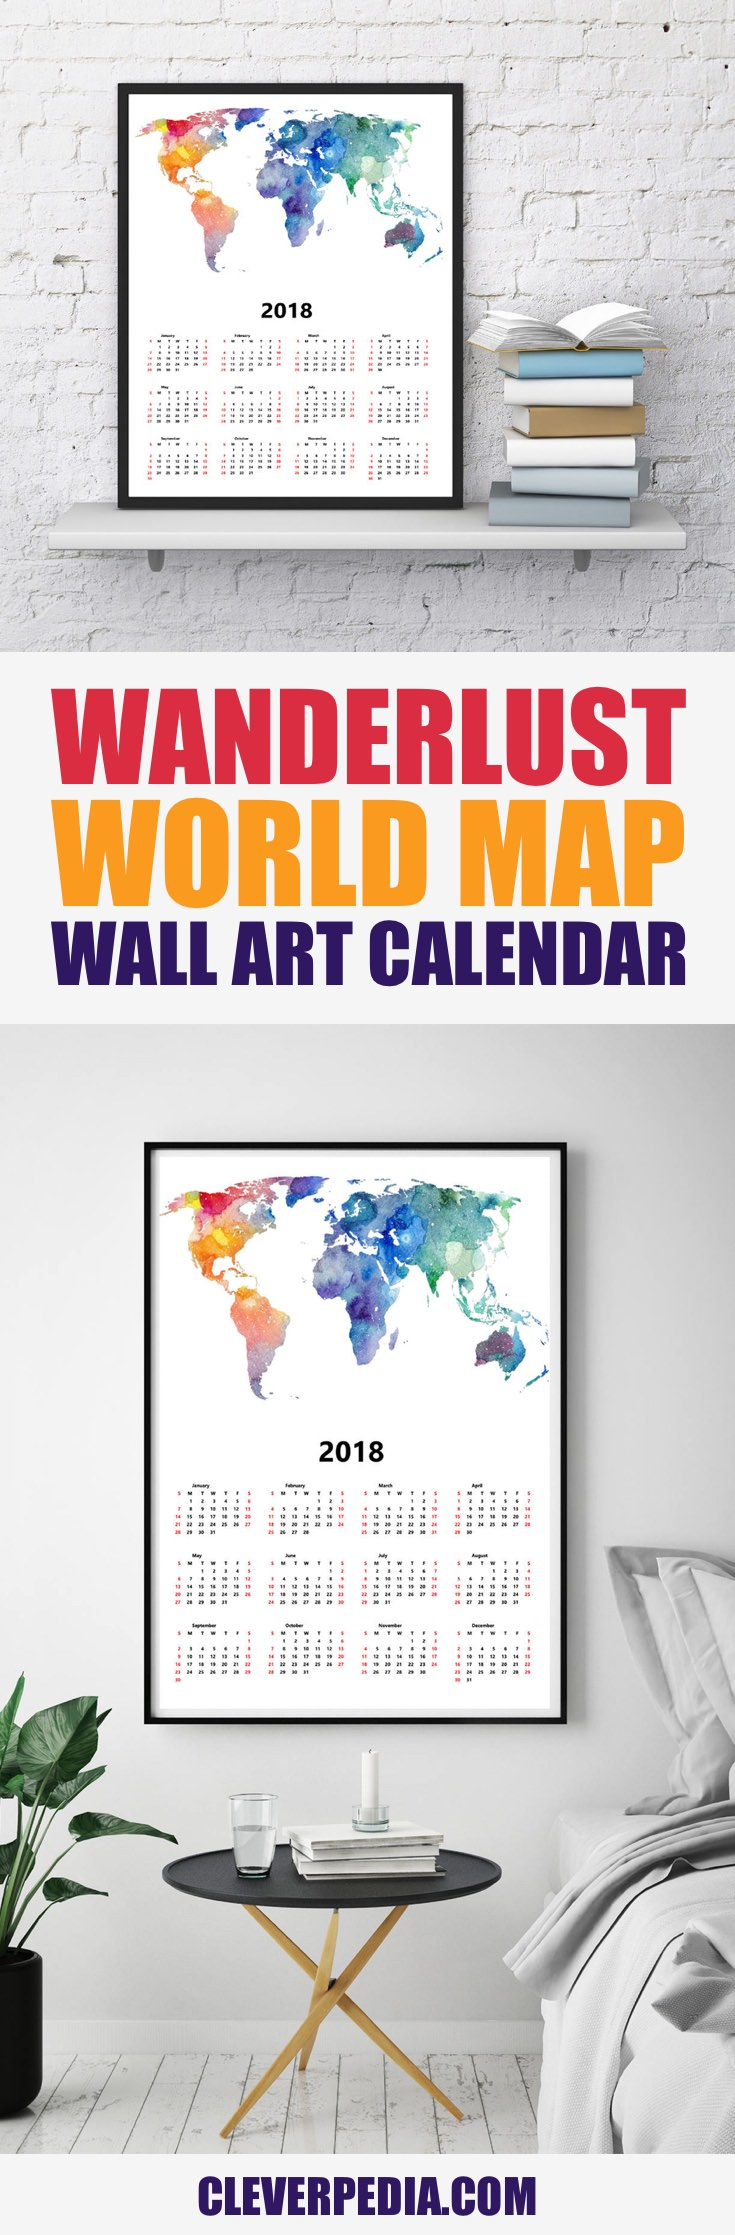 Best 2018 wall art calendars creative gifts cleverpedia 2018 wanderlust world map calendar print gumiabroncs Gallery